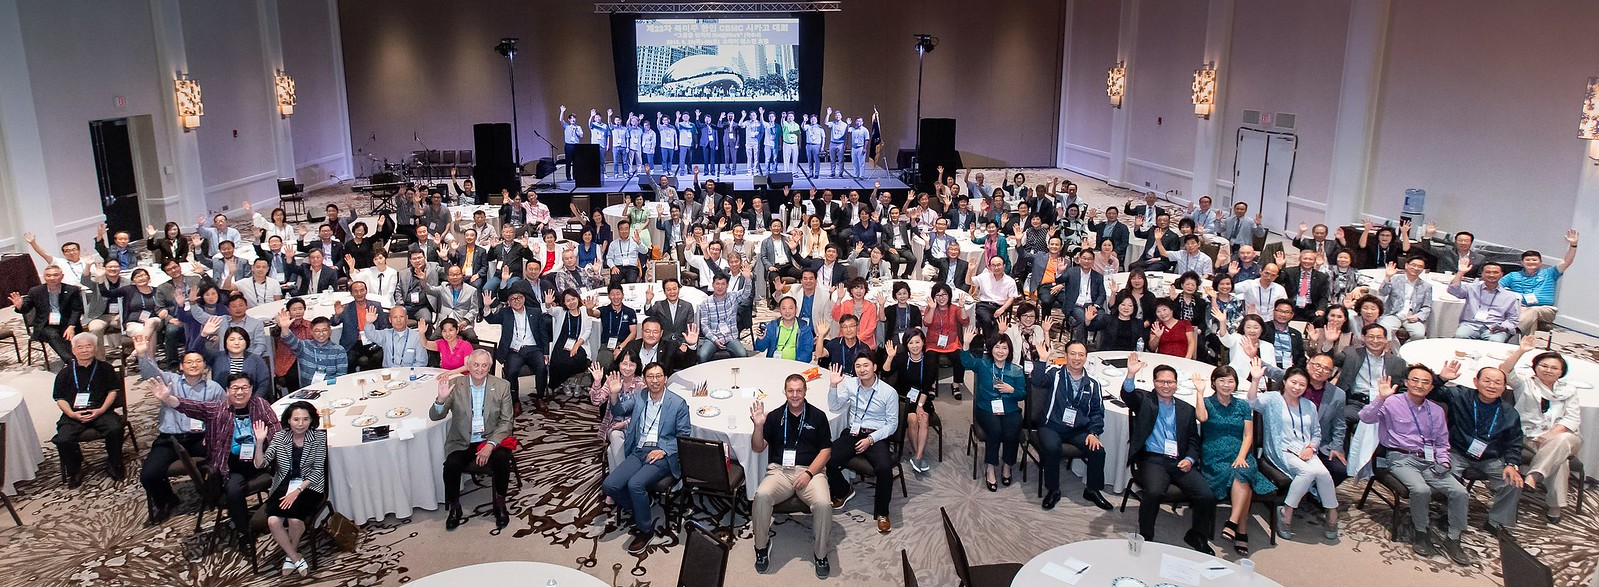 2018 CBMC Chicago_group